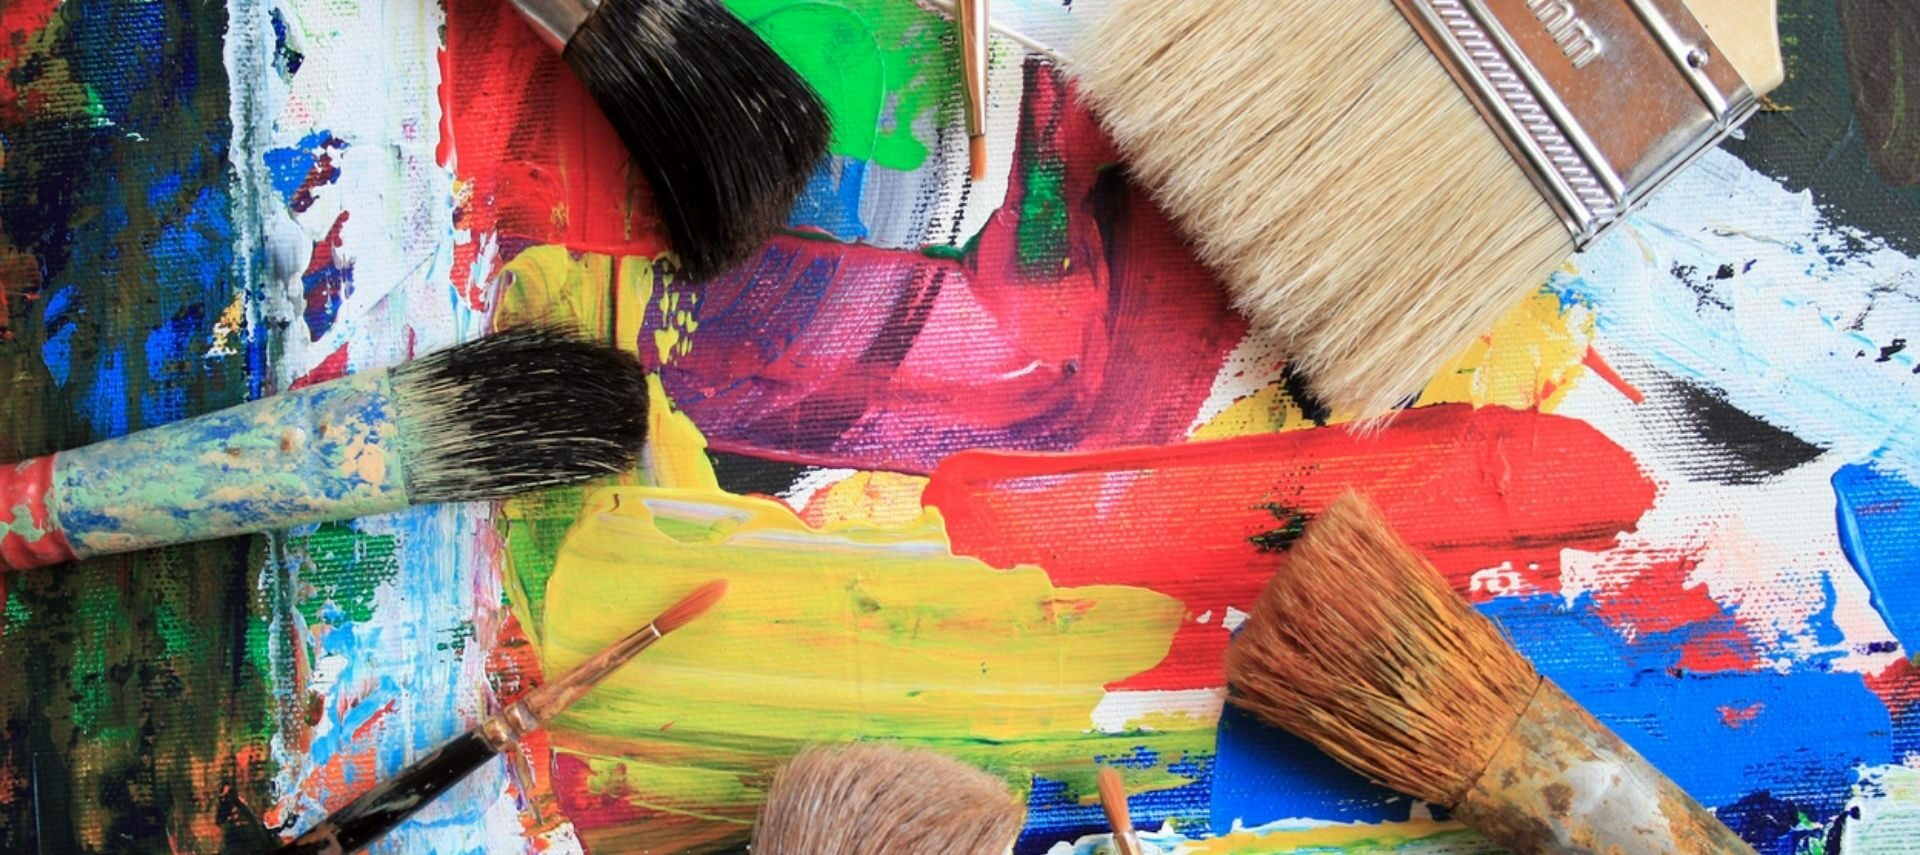 Brush marks in colorful paint with several different shaped paint brushes